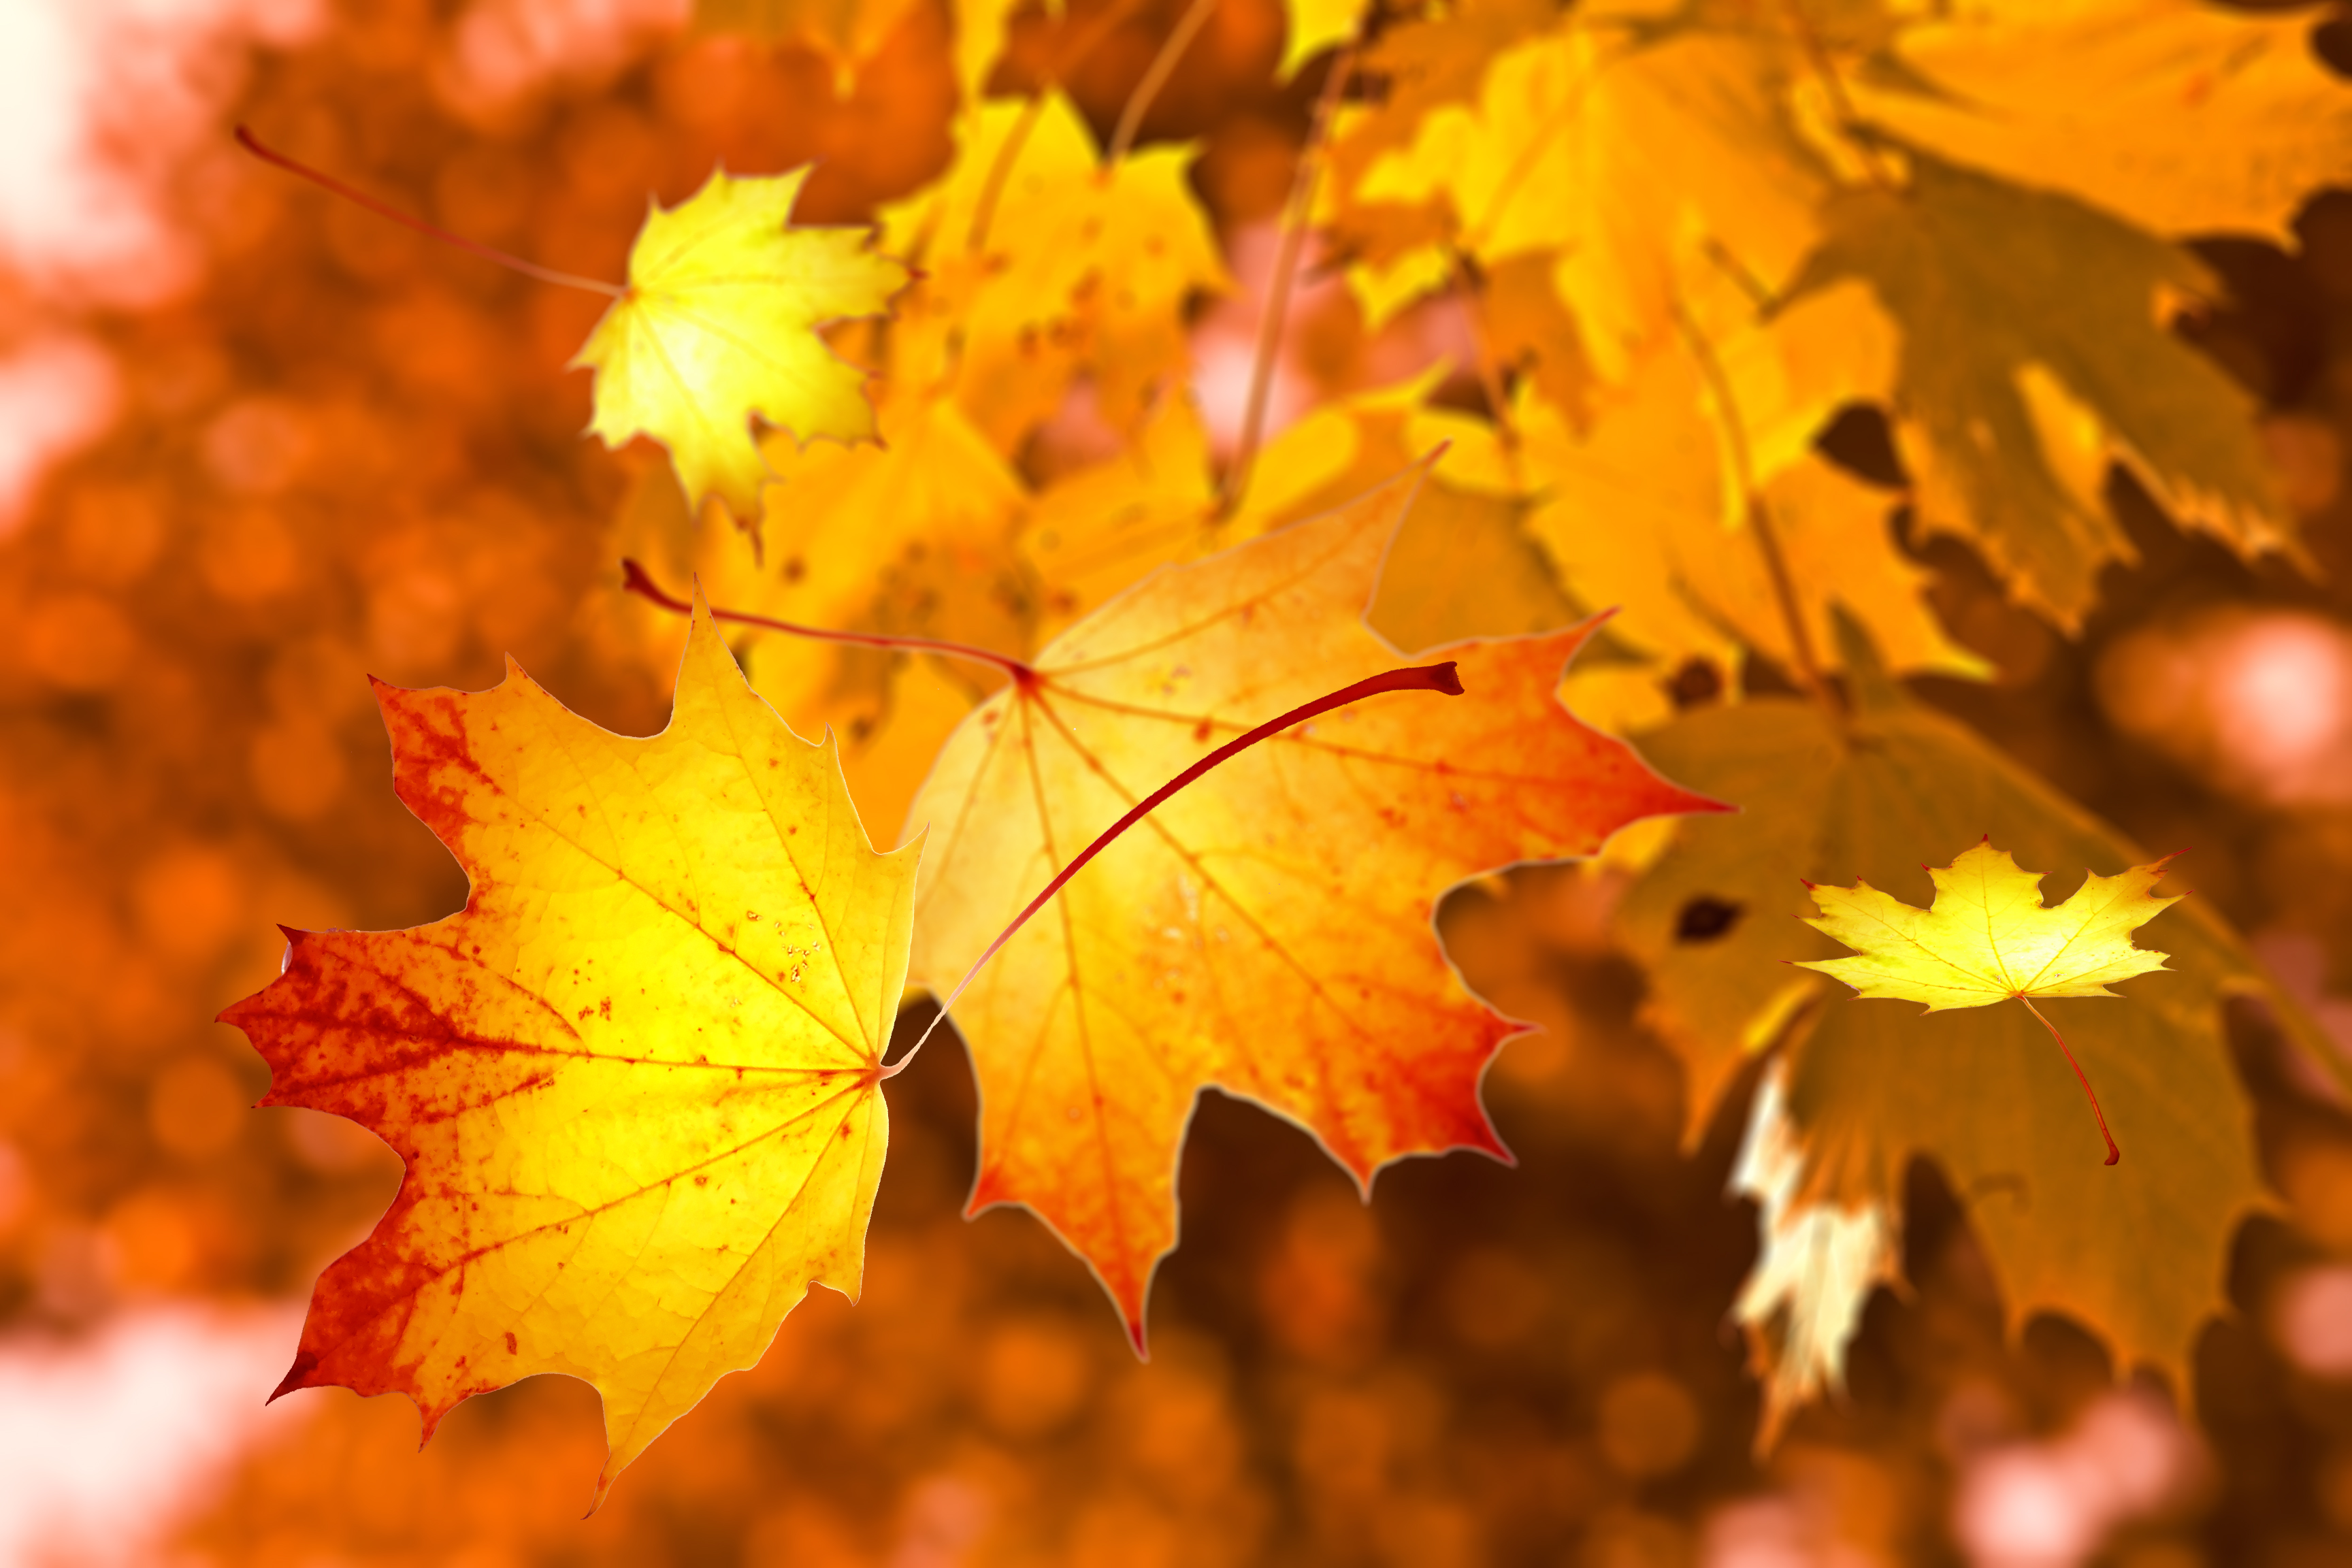 https://get.pxhere.com/photo/autumn-leaves-nature-maple-leaf-leaf-yellow-deciduous-sunlight-maple-tree-tree-branch-computer-wallpaper-1418157.jpg